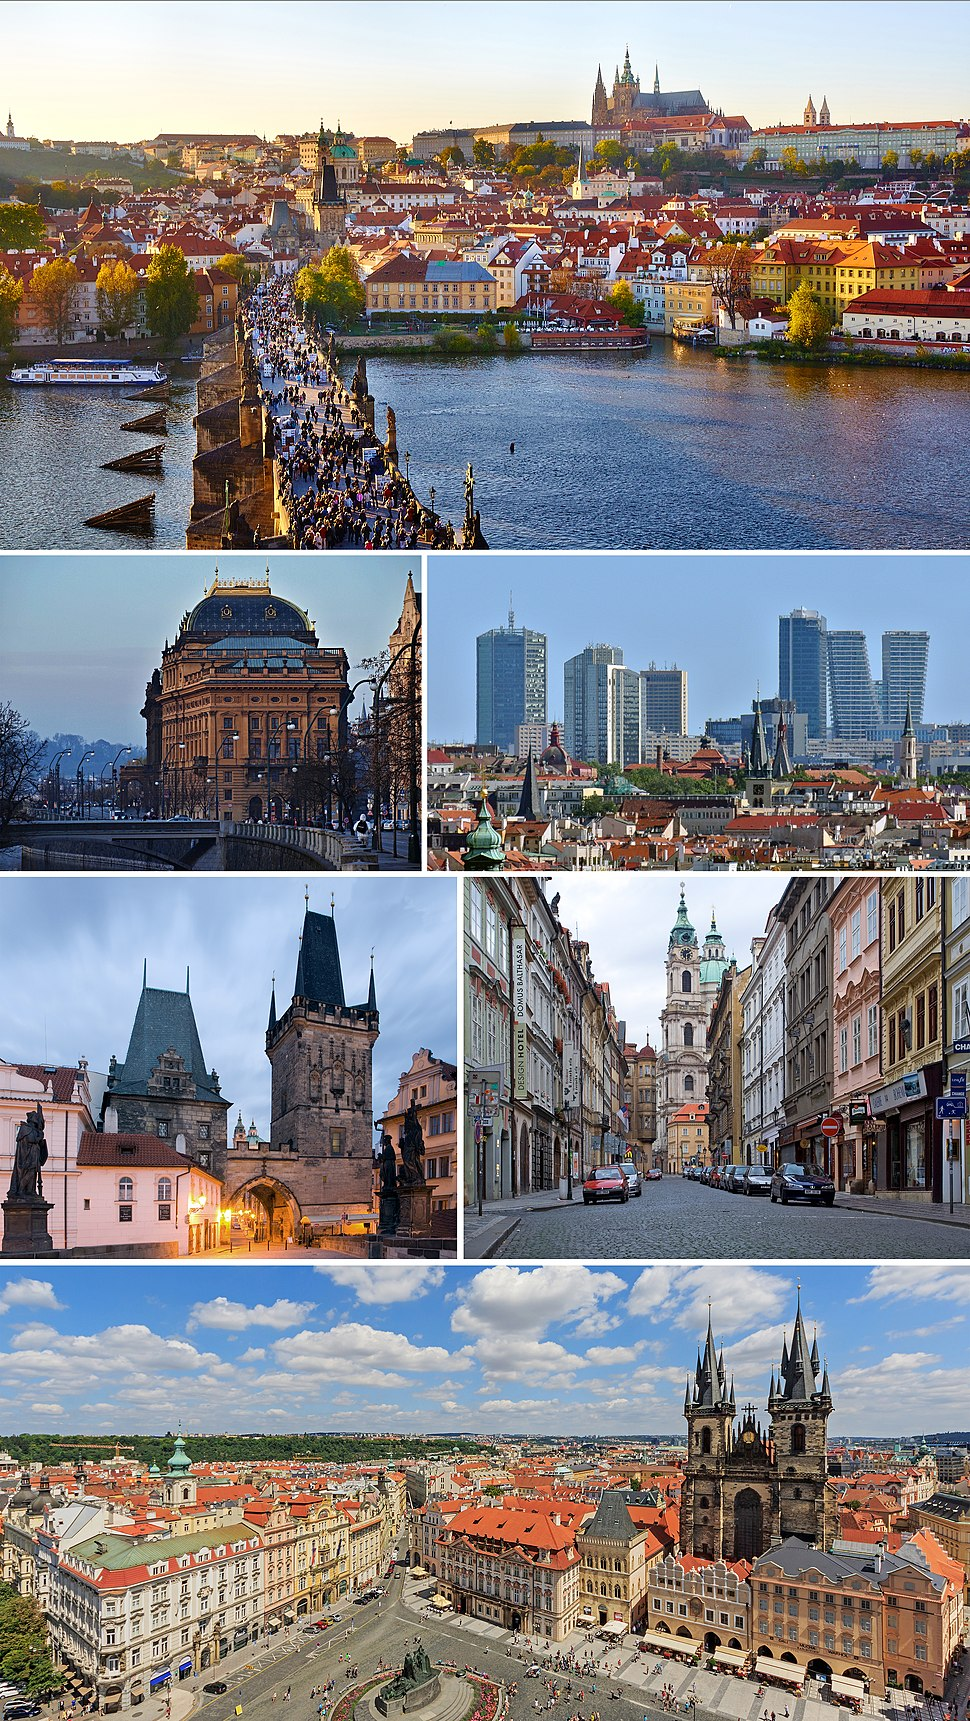 Clockwise from top: panorama with Prague Castle, Malá Strana and Charles Bridge; Pankrác district with high-rise buildings; street view in Malá Strana; Old Town Square panorama; gatehouse tower of the Charles Bridge; National Theatre